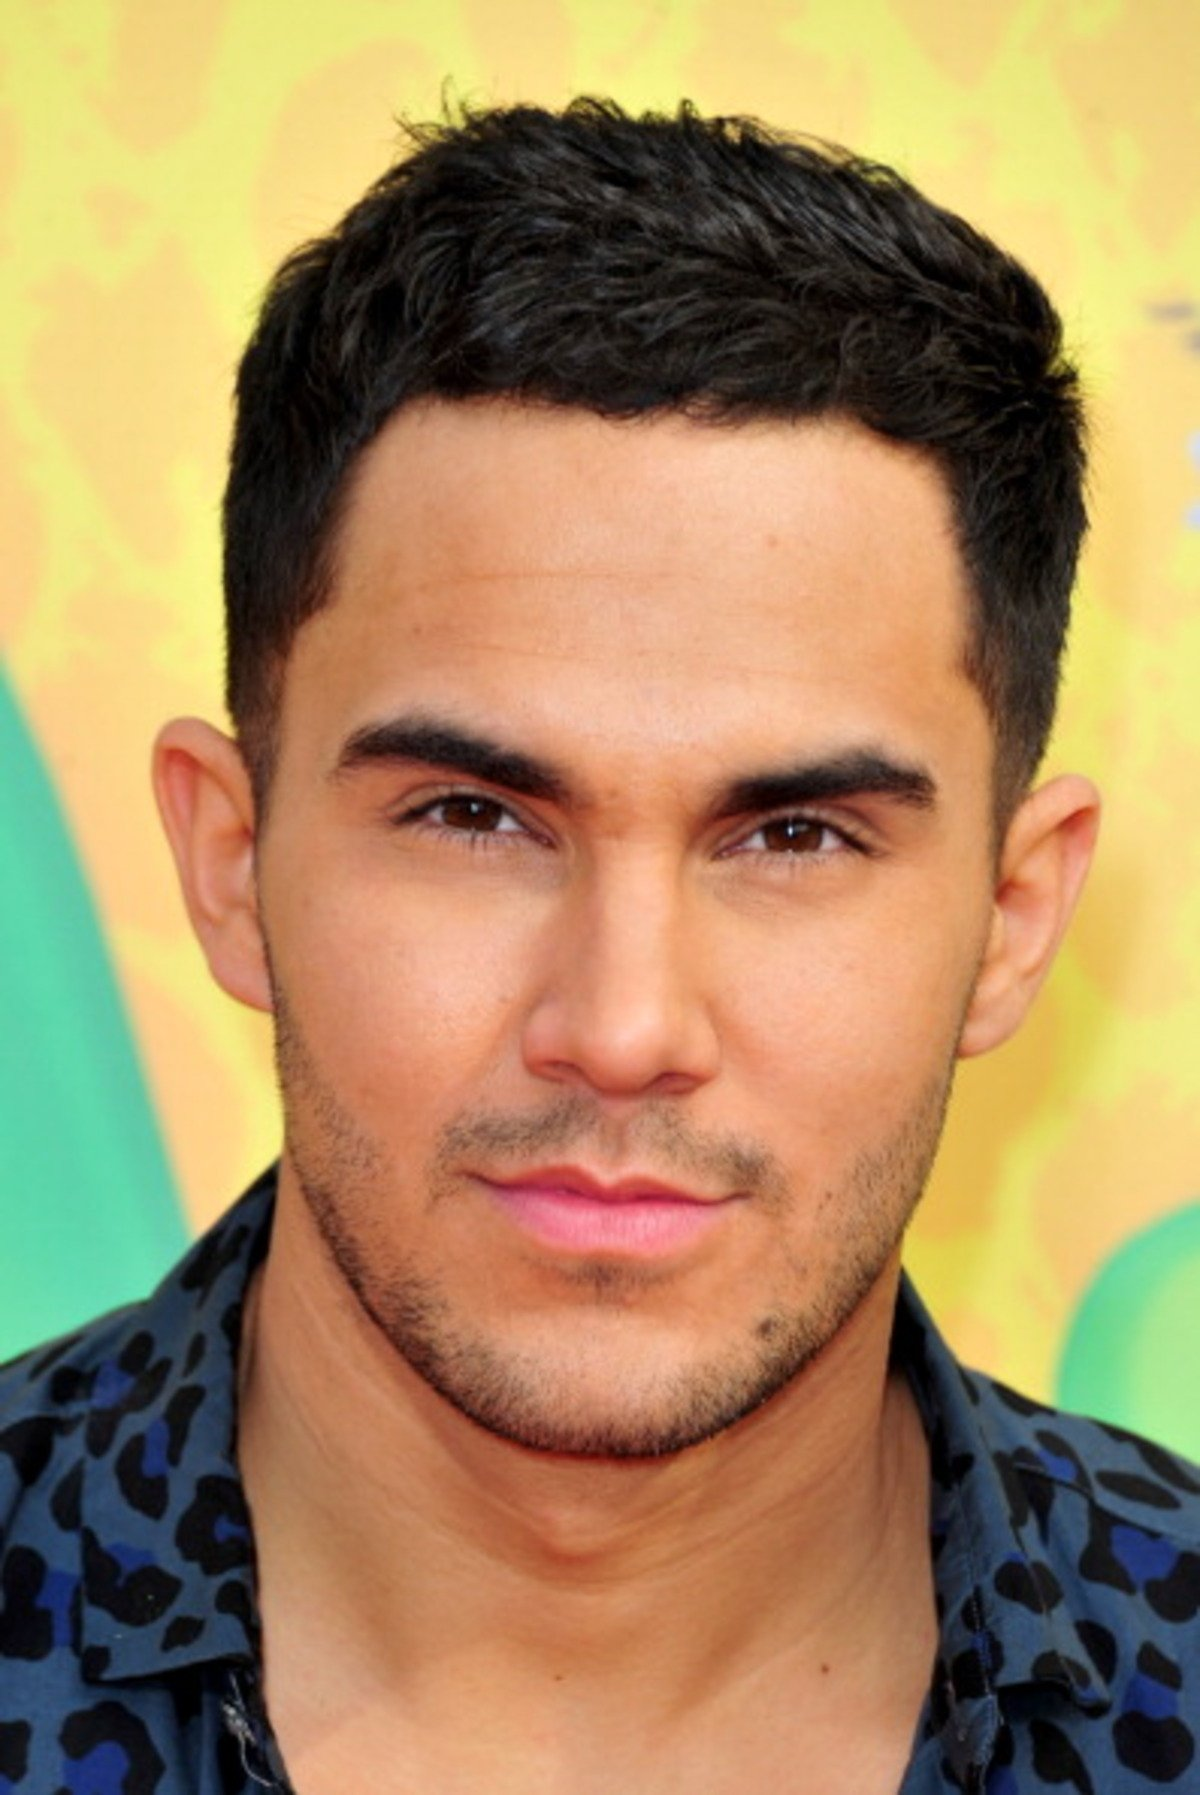 Whos dating carlos pena jr